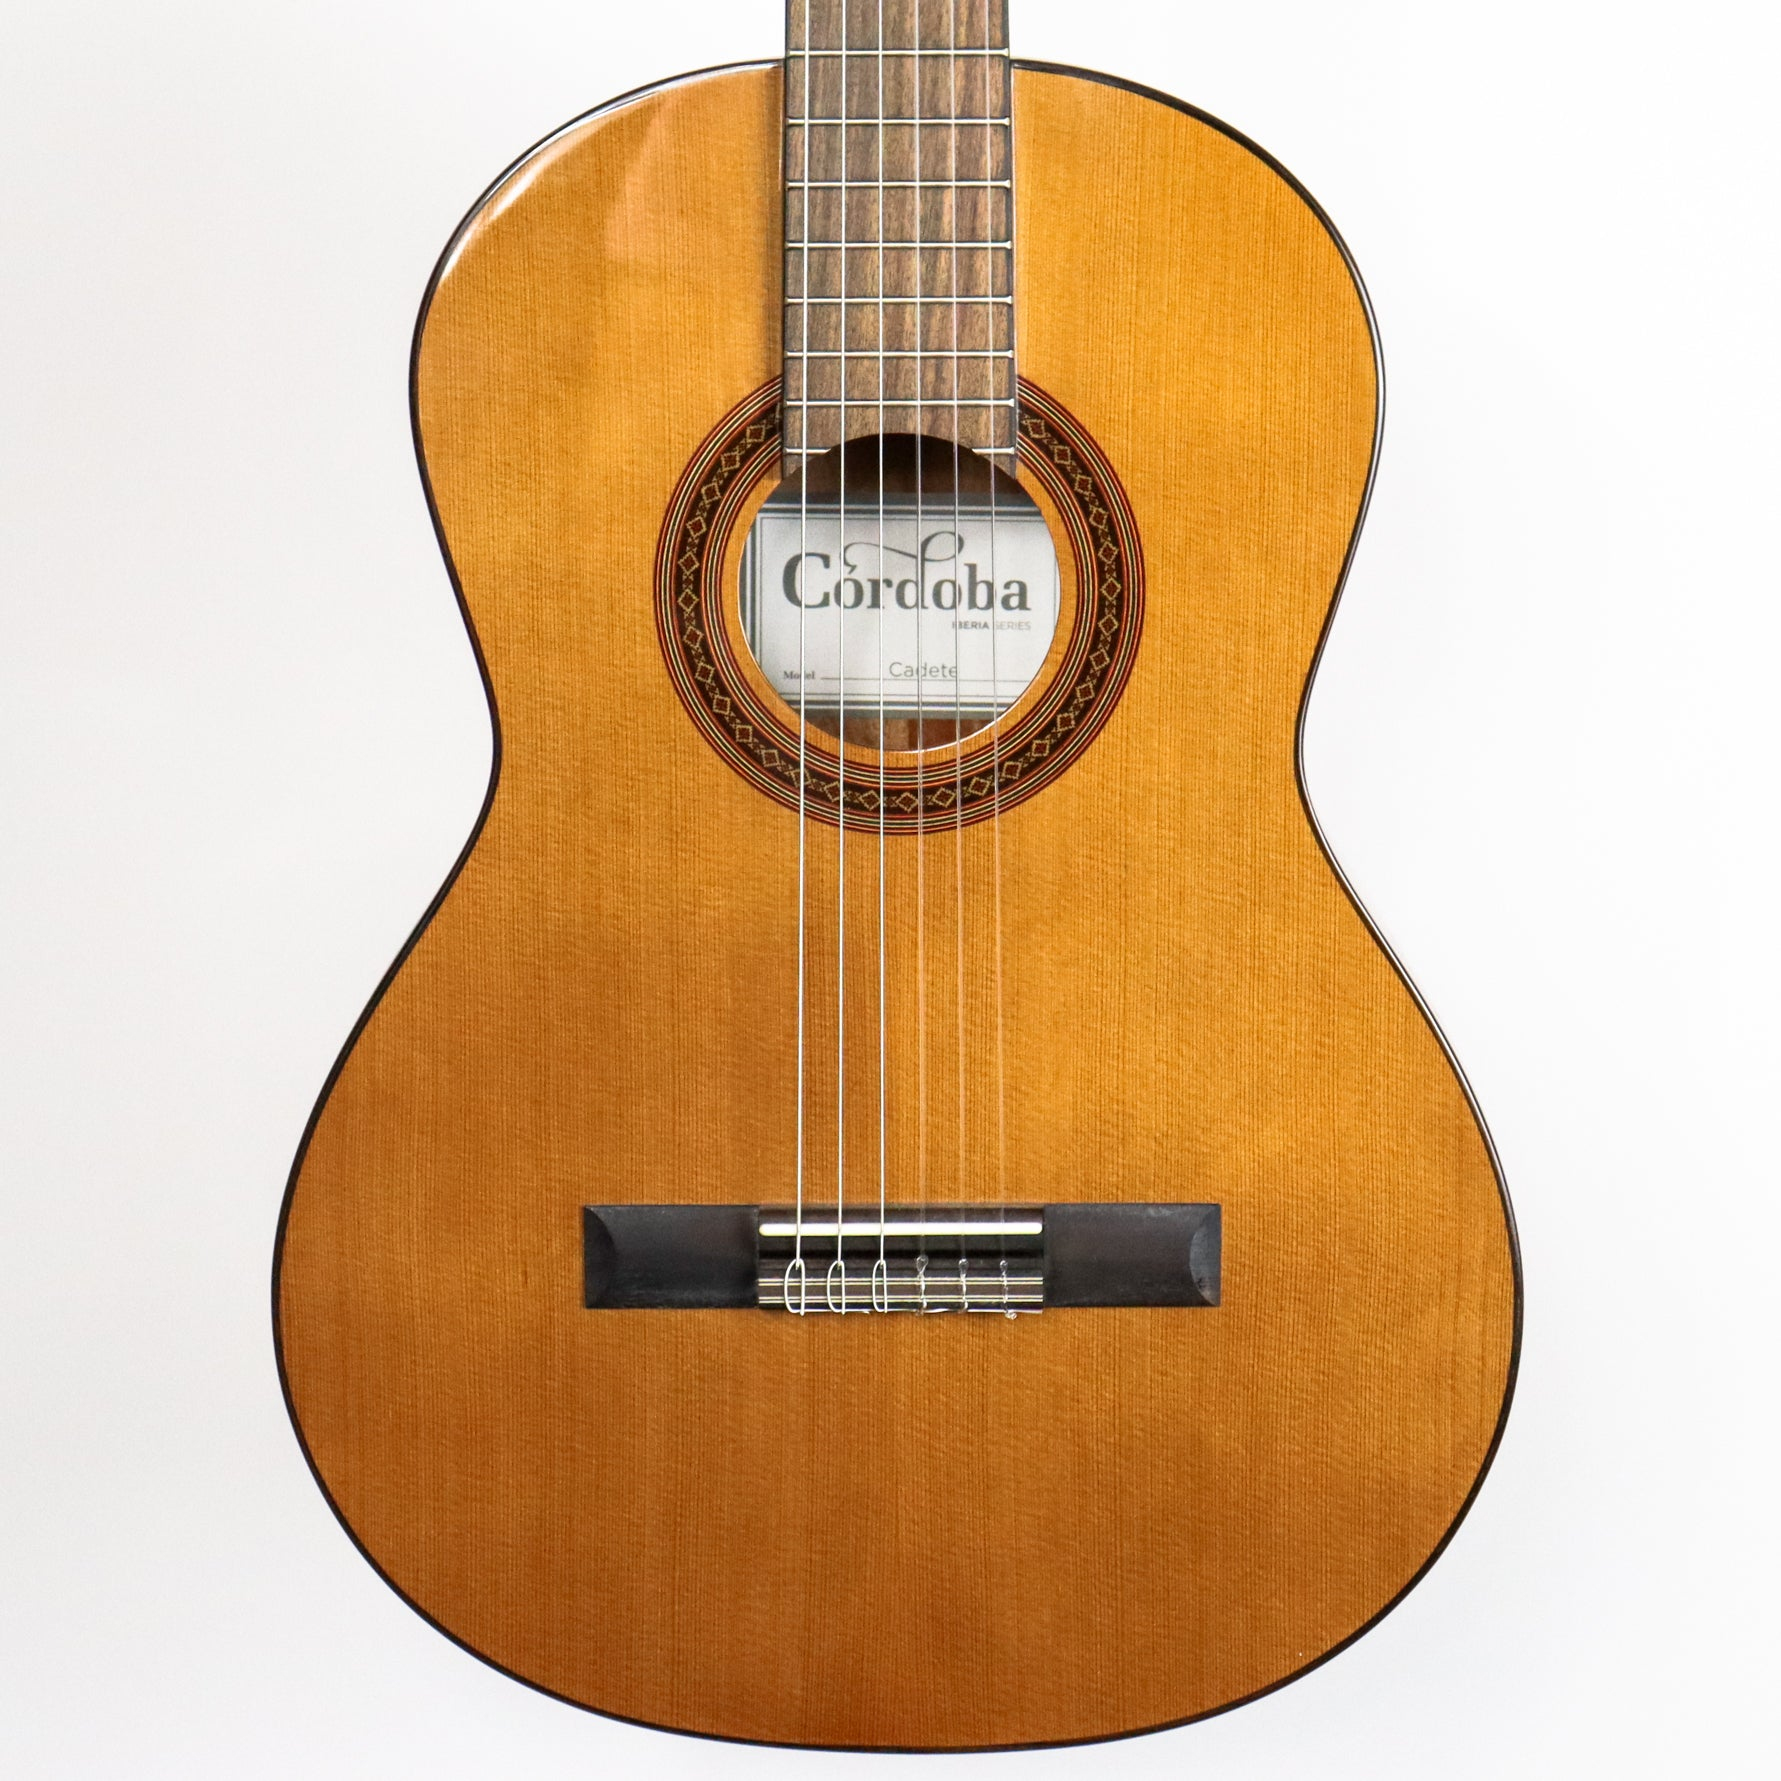 Cordoba Cadete 3/4 size Solid Canadian Cedar Top, African Mahogany Back and Sides